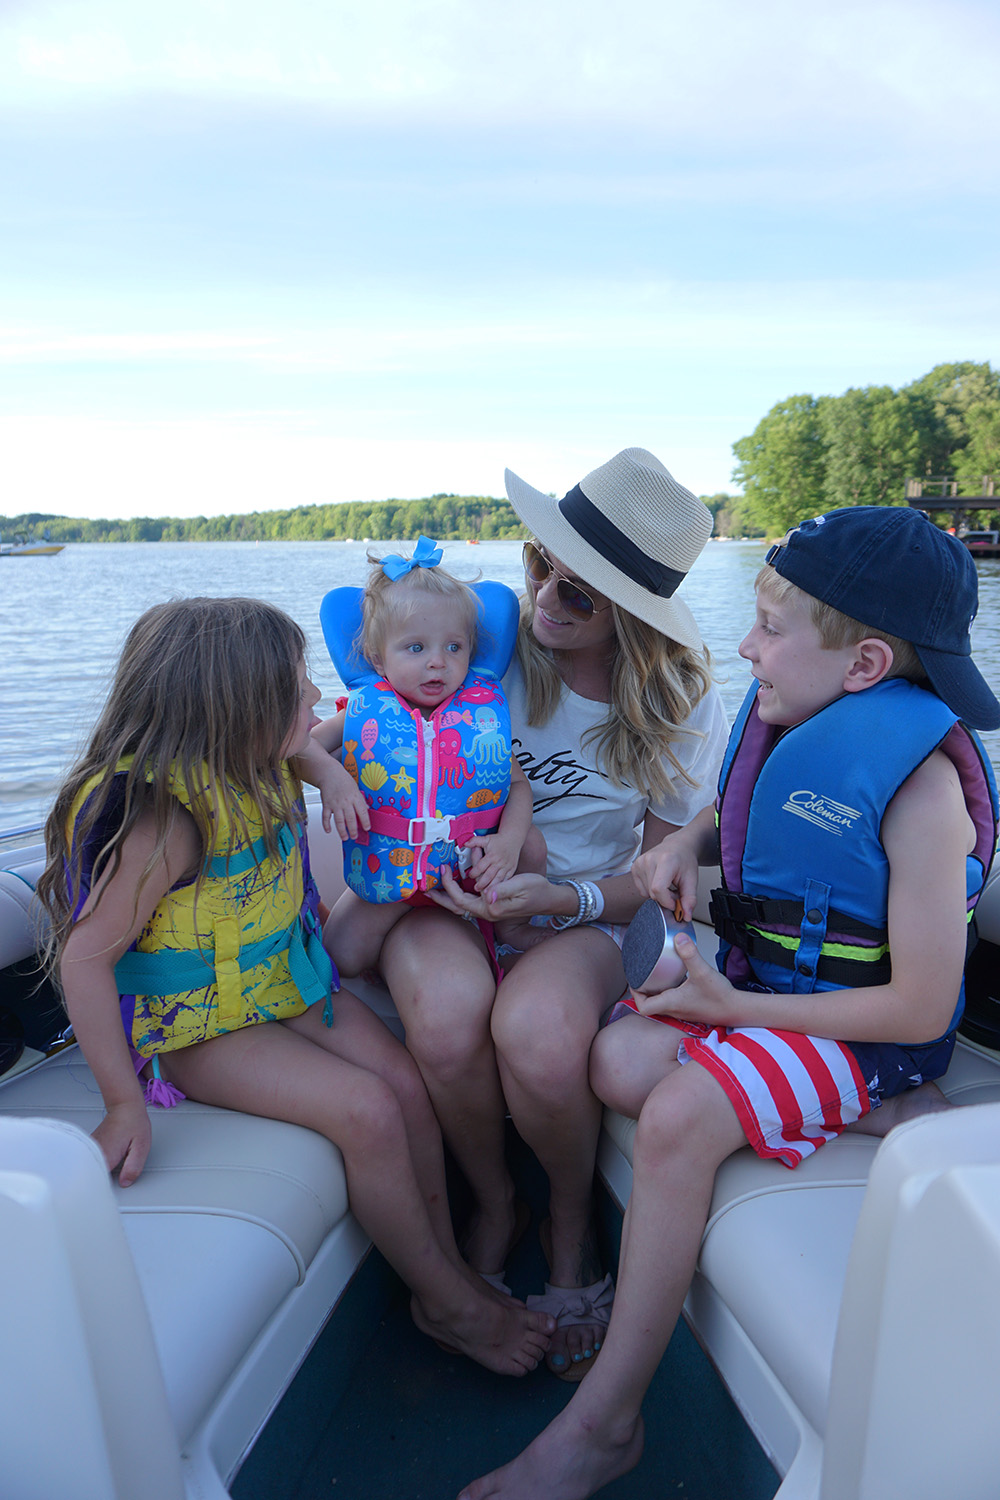 6 tips for boating safely with kids